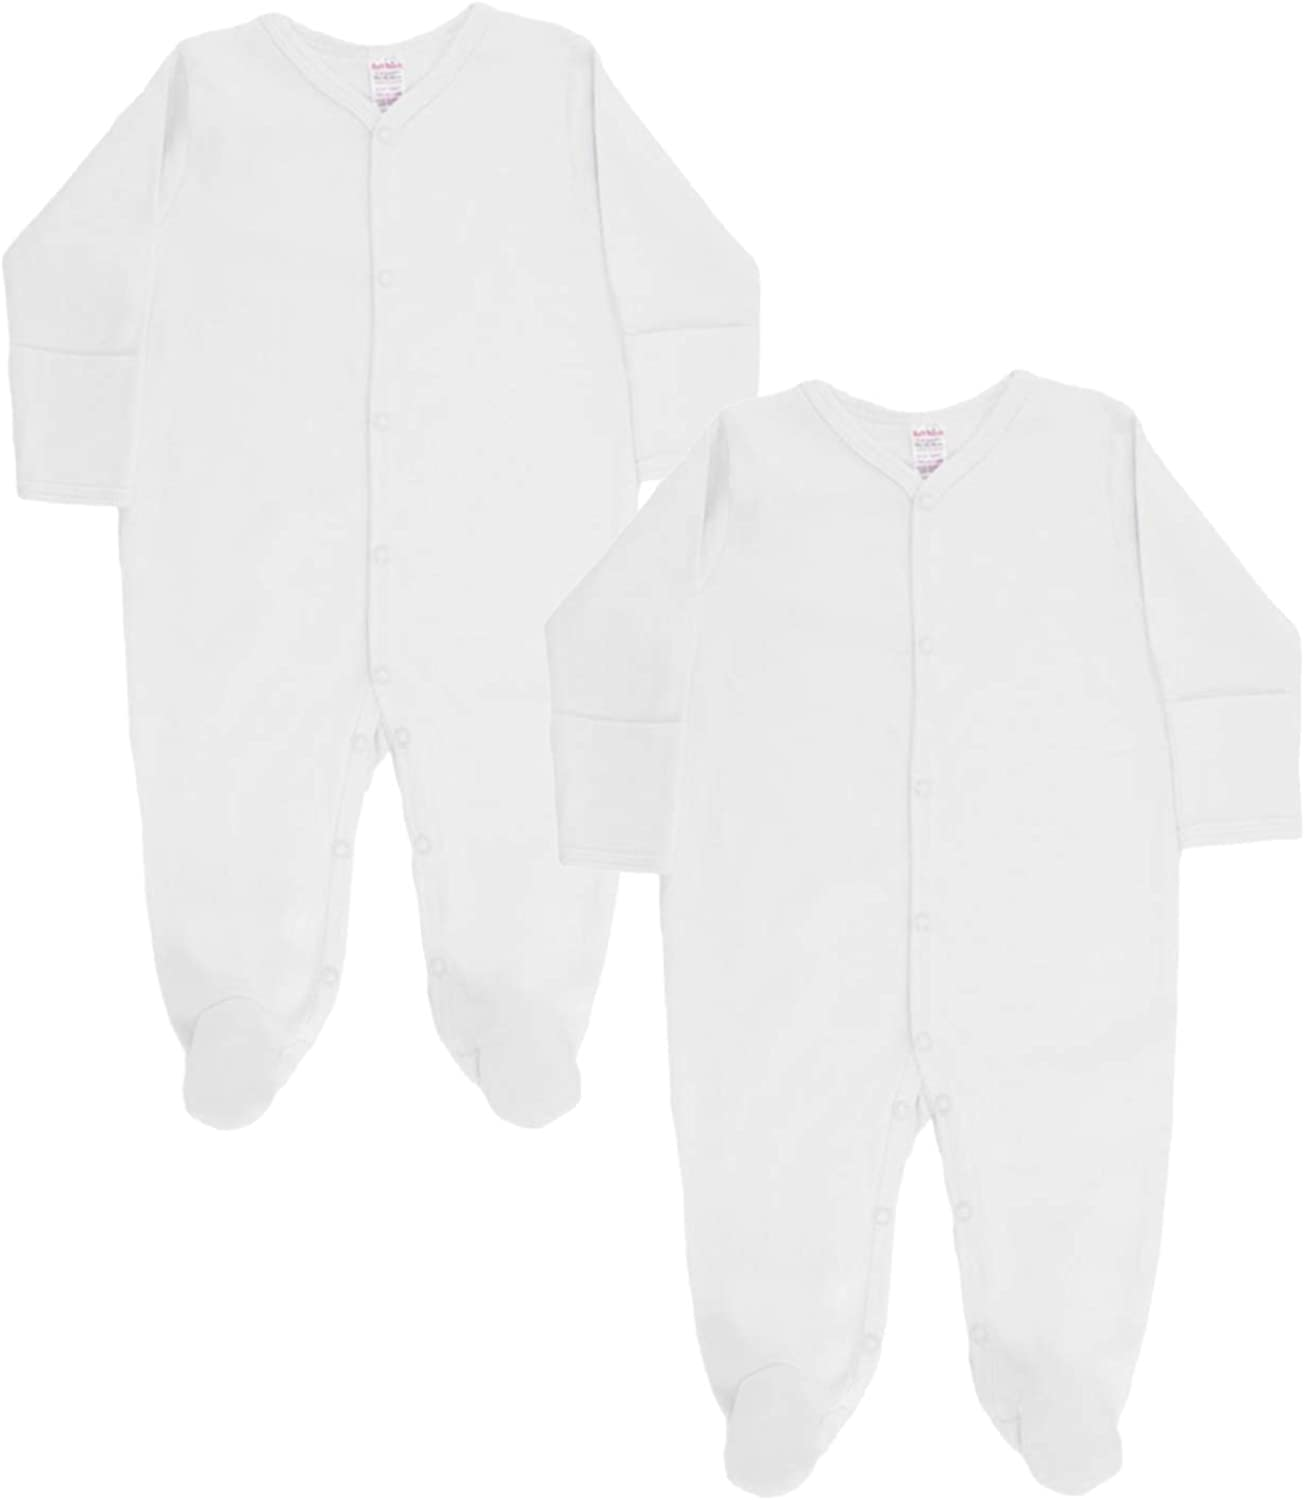 Popper Fastening Baby Sleepsuits 2 Pack UK Brand Long Sleeved Cotton Babygrows